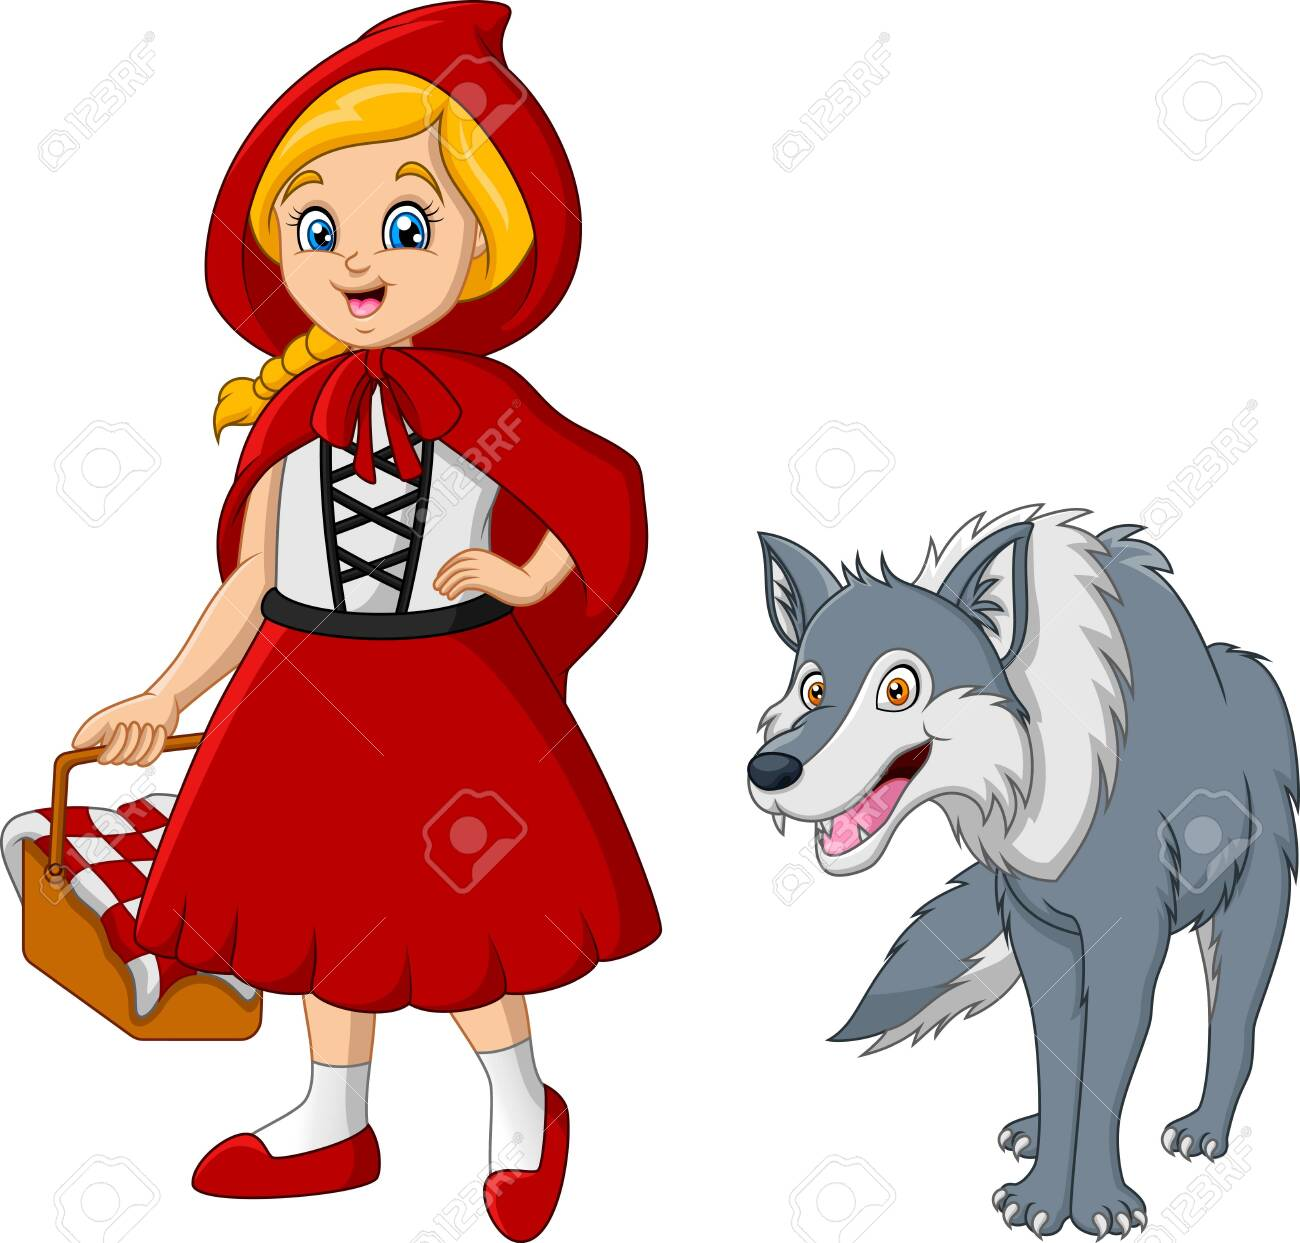 Little red riding hood with wolf - 137493510